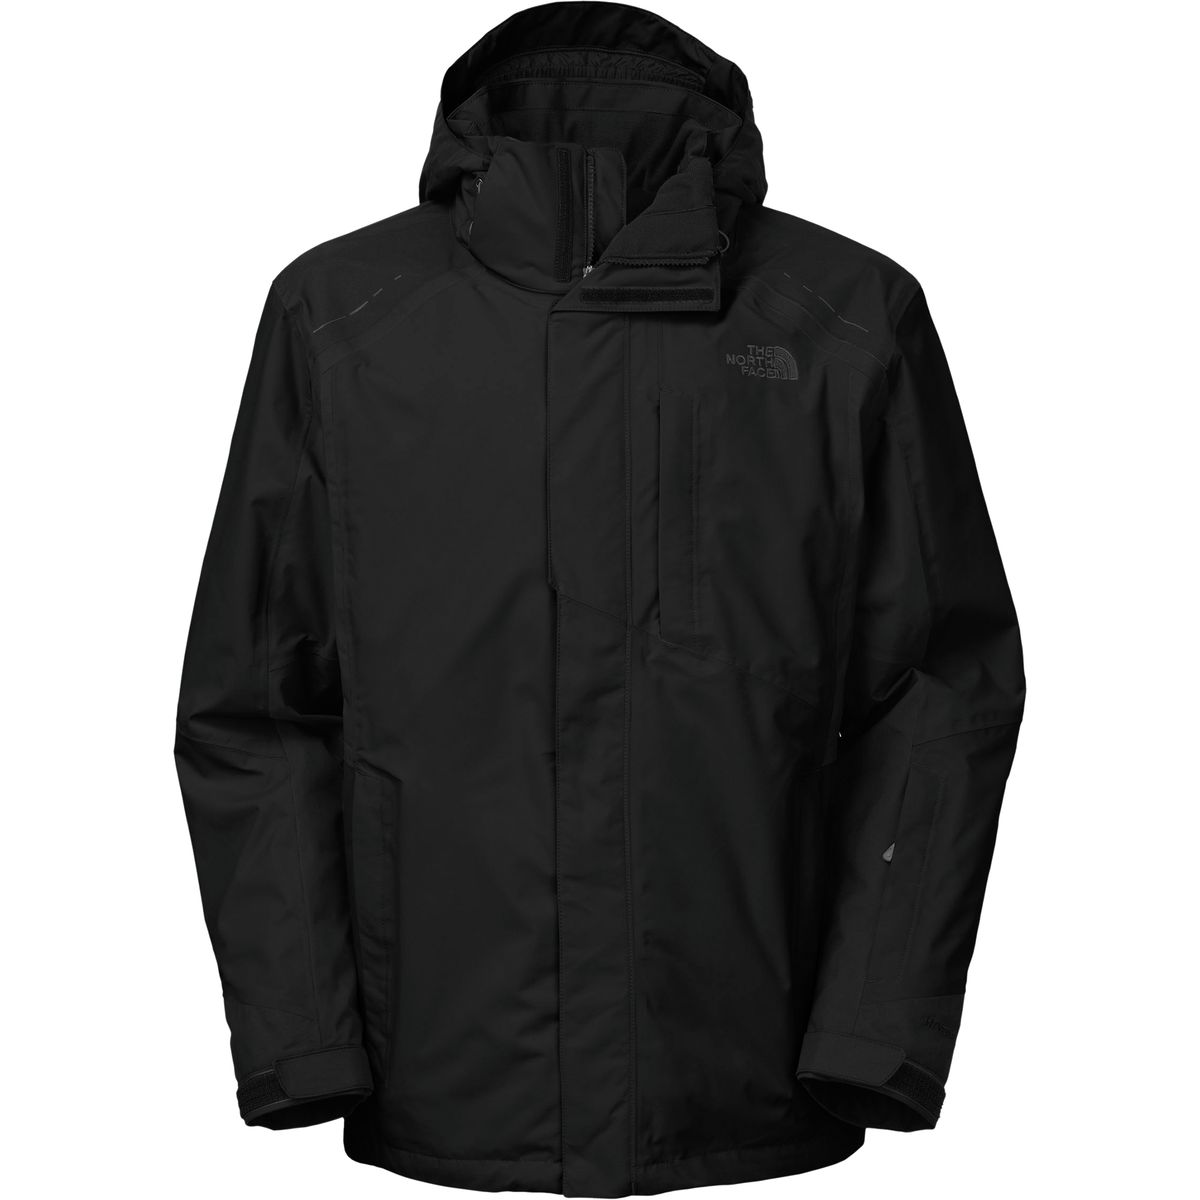 The North Face Vortex Triclimate Jacket - Men